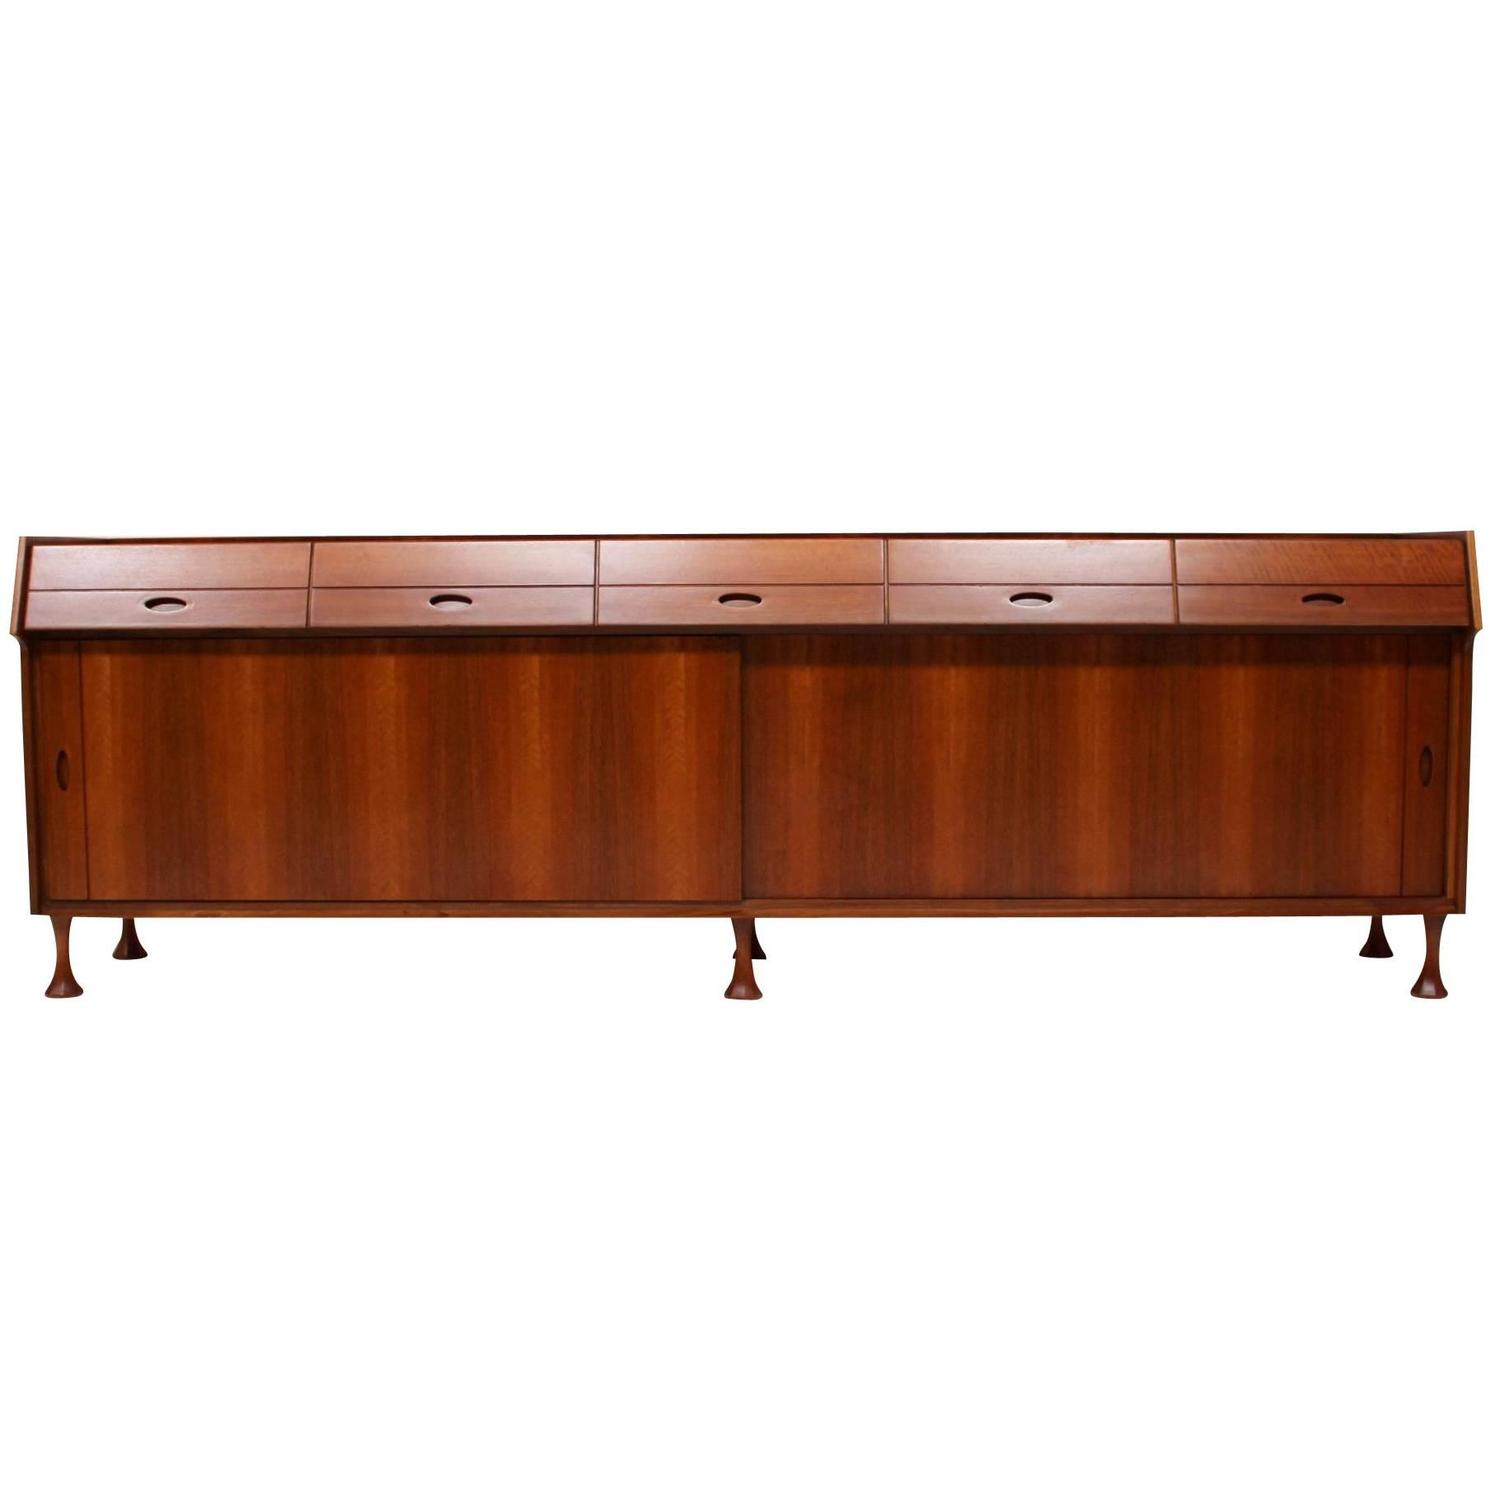 Mid Century Modern Long Sideboard Dresser Credenza Buffet At 1stdibs. Full resolution  portrait, nominally Width 1500 Height 1499 pixels, portrait with #3D1507.